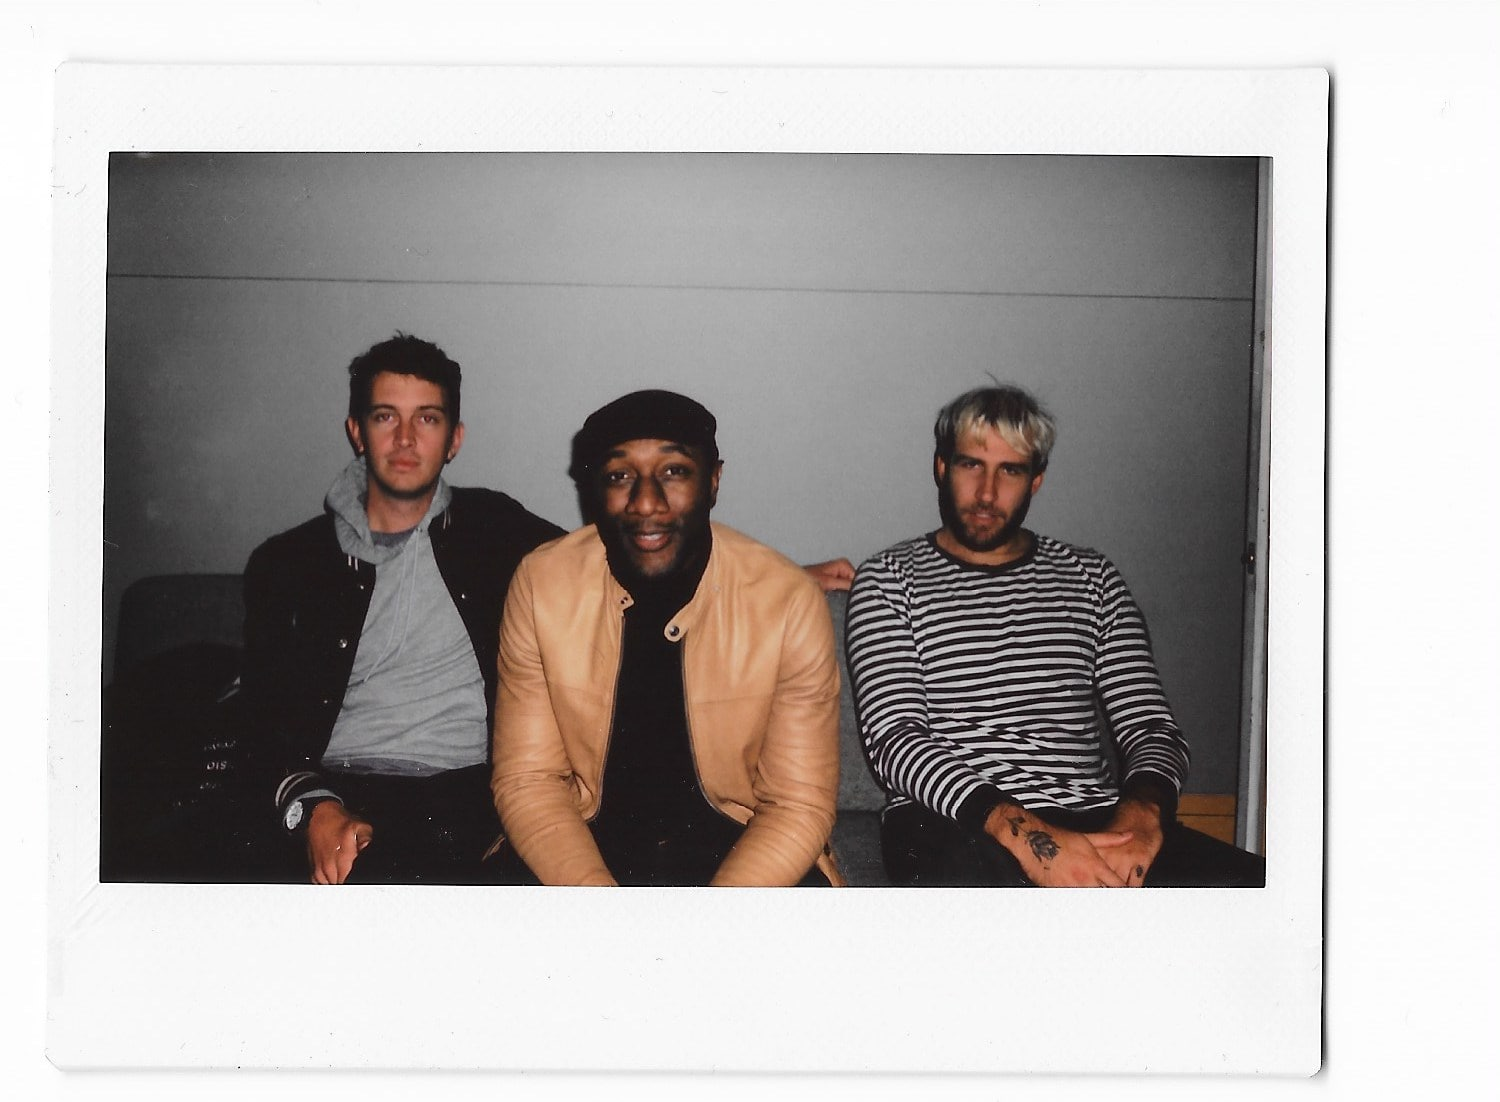 Pickymagazine, Picky Magazine, Blog, Blogger, Online, Indie, Musik, Indie Musik, Magazin, Newcomer, TLDR, Aloe Blacc, Better Than Ever, Flight Facilities